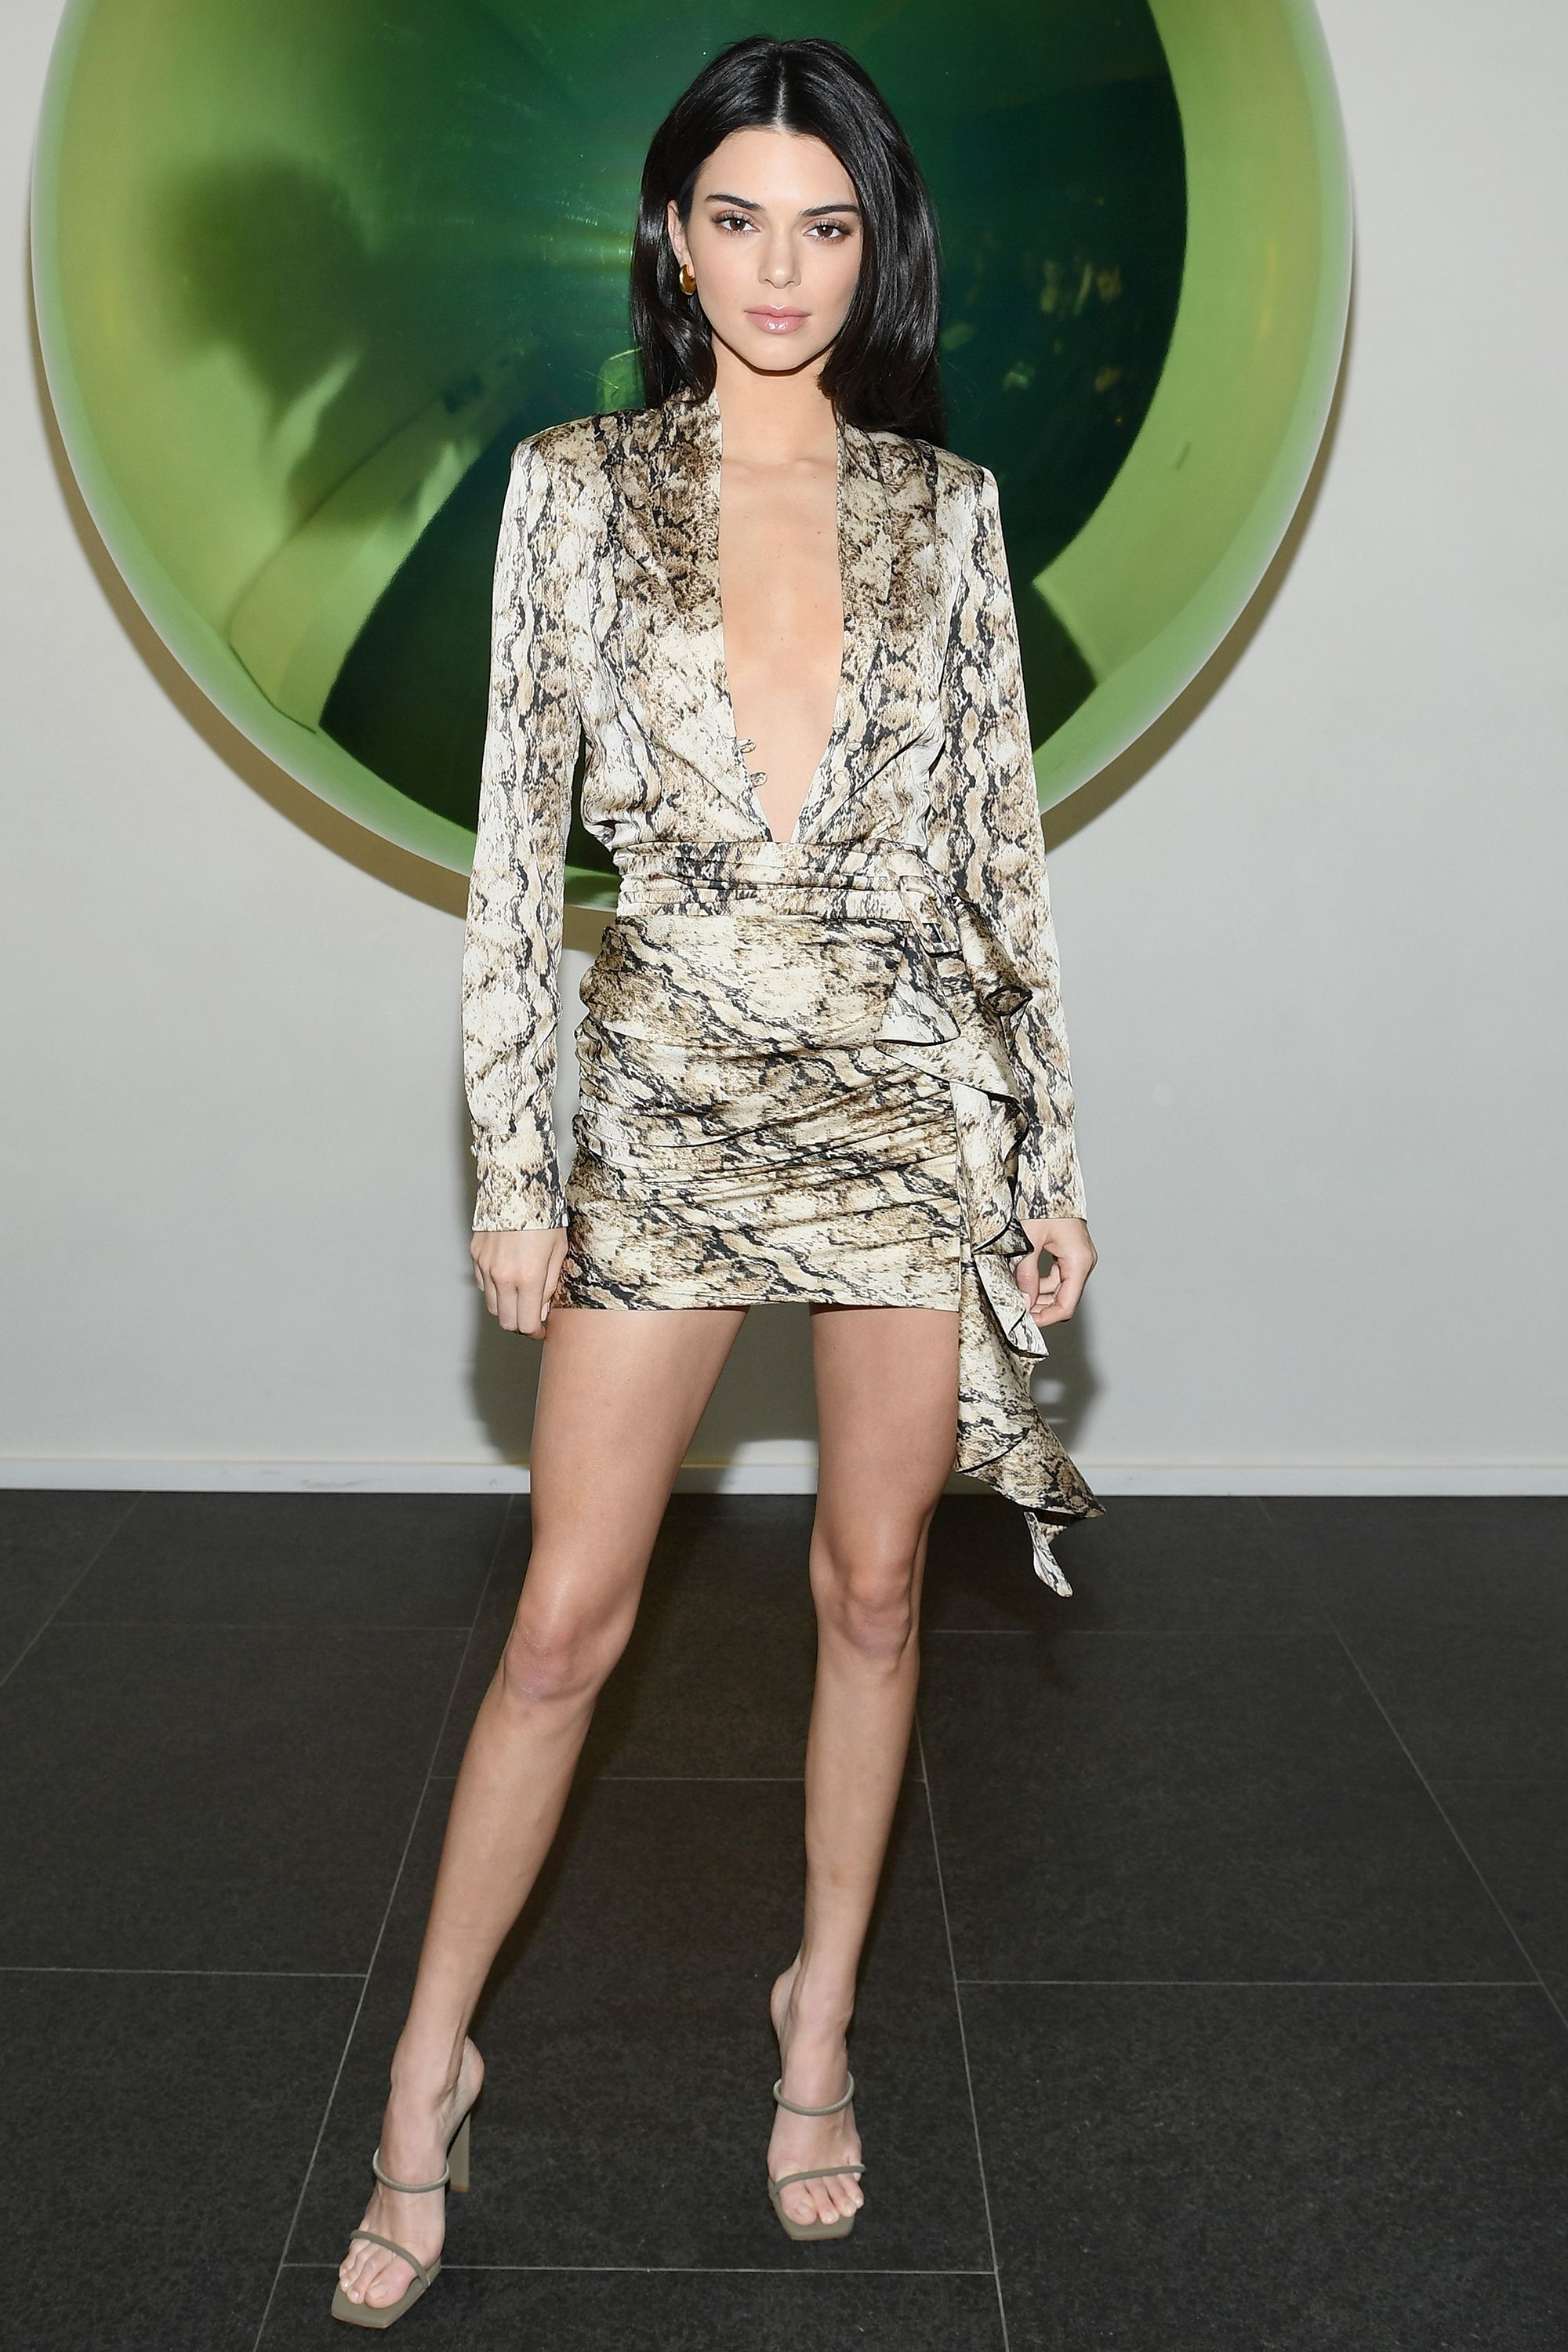 0932b8c95a4 Kendall Jenner Style - Kendall Jenner s Best Outfits